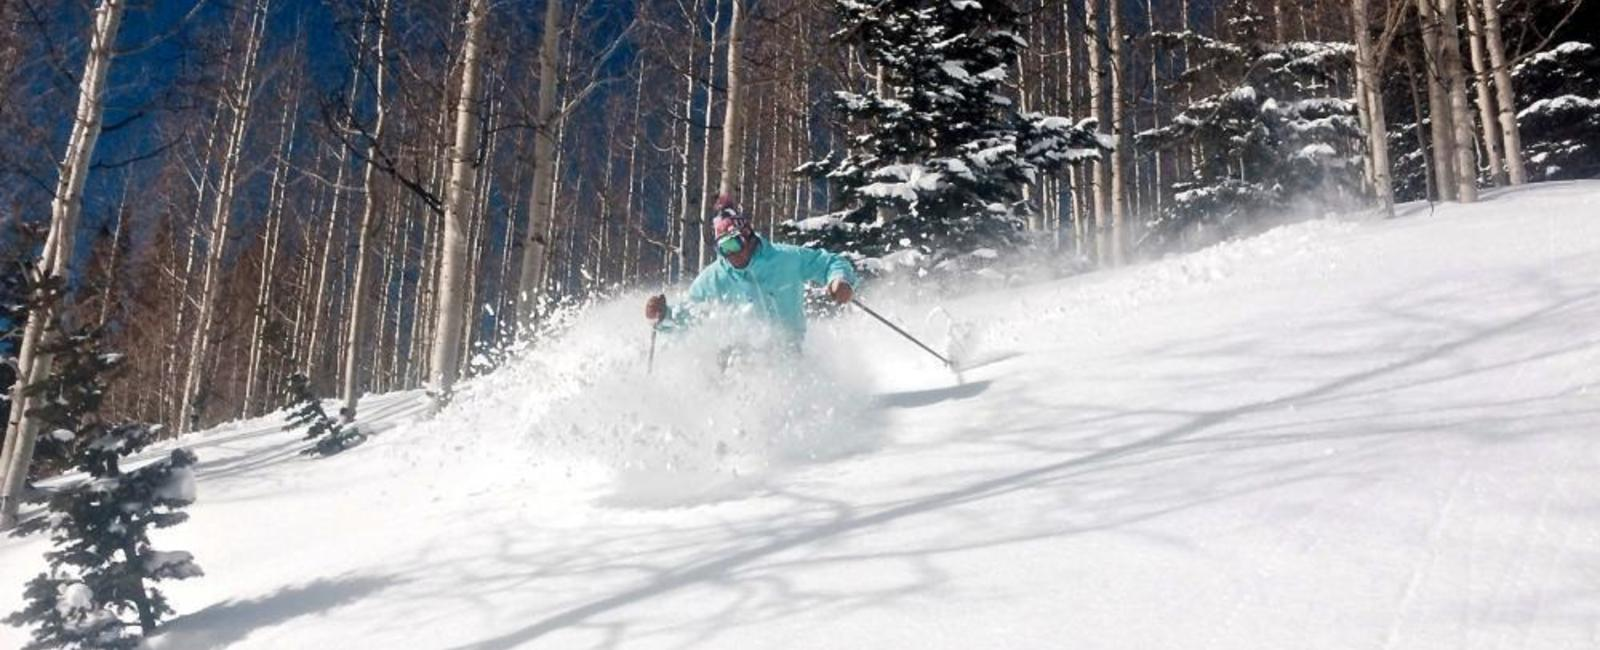 Spring Powder Day at Park City Mountain Resort